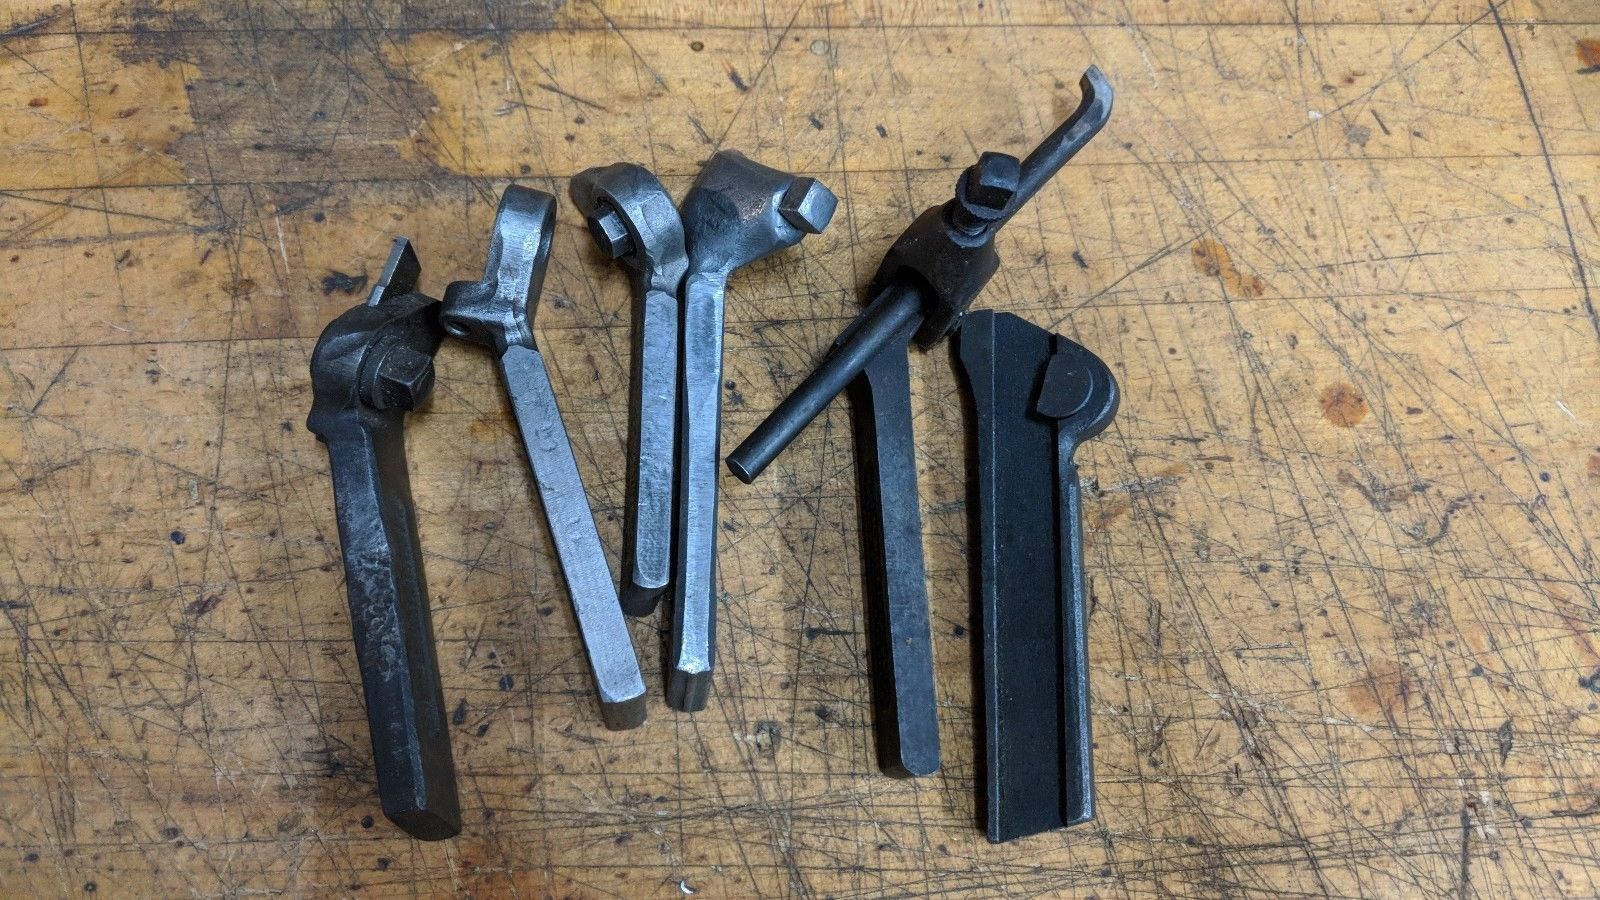 6 ASSORTED METAL LATHE LANTERN TOOL POST BIT HOLDERS ARMSTRONG JH WILLIAMS SET11